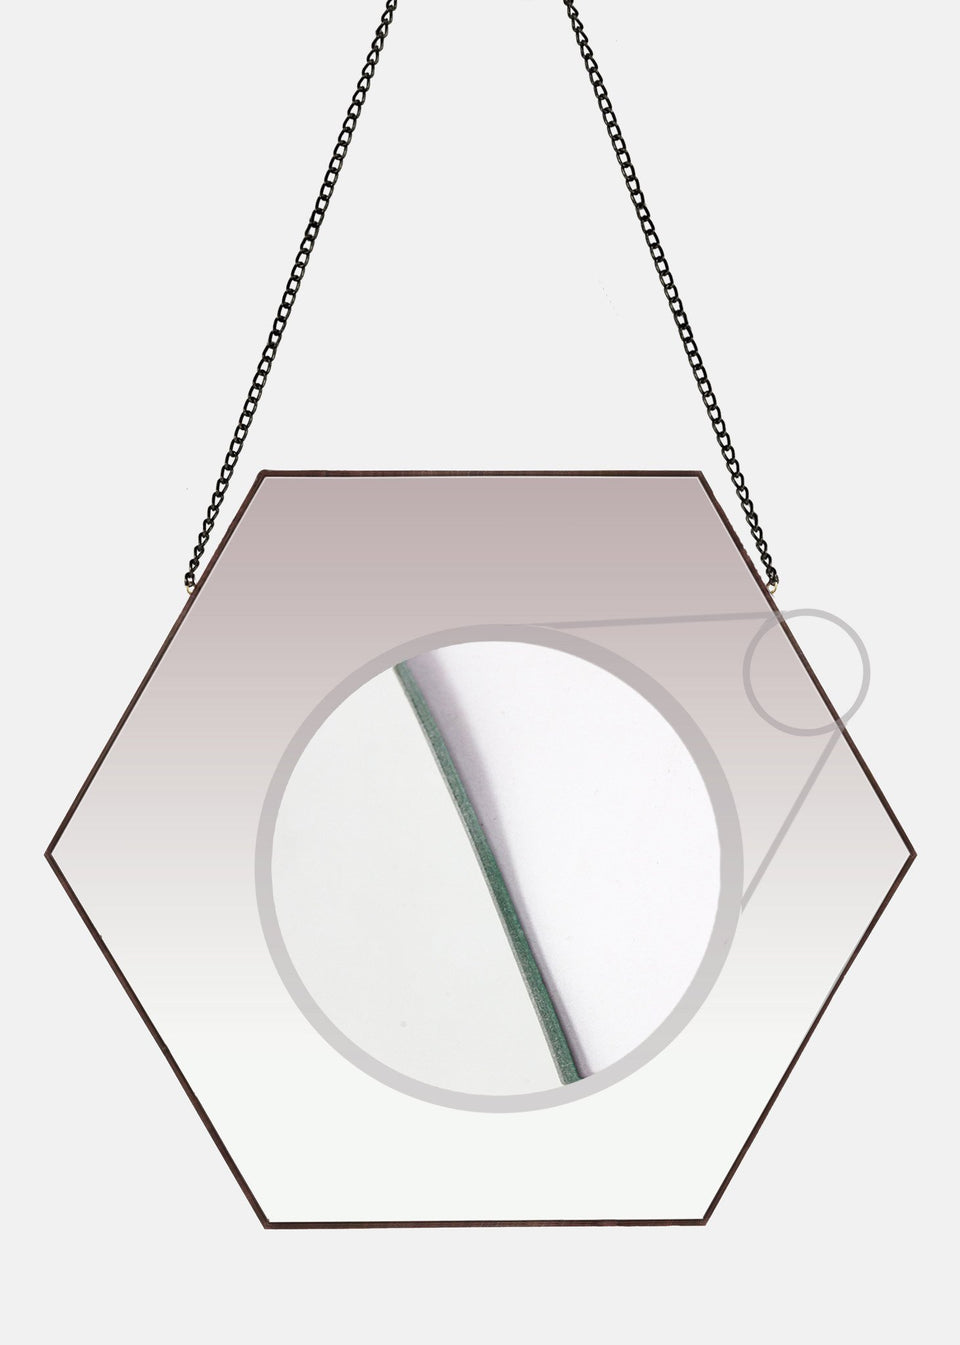 Hexagonal Wall Mirror - With Chain